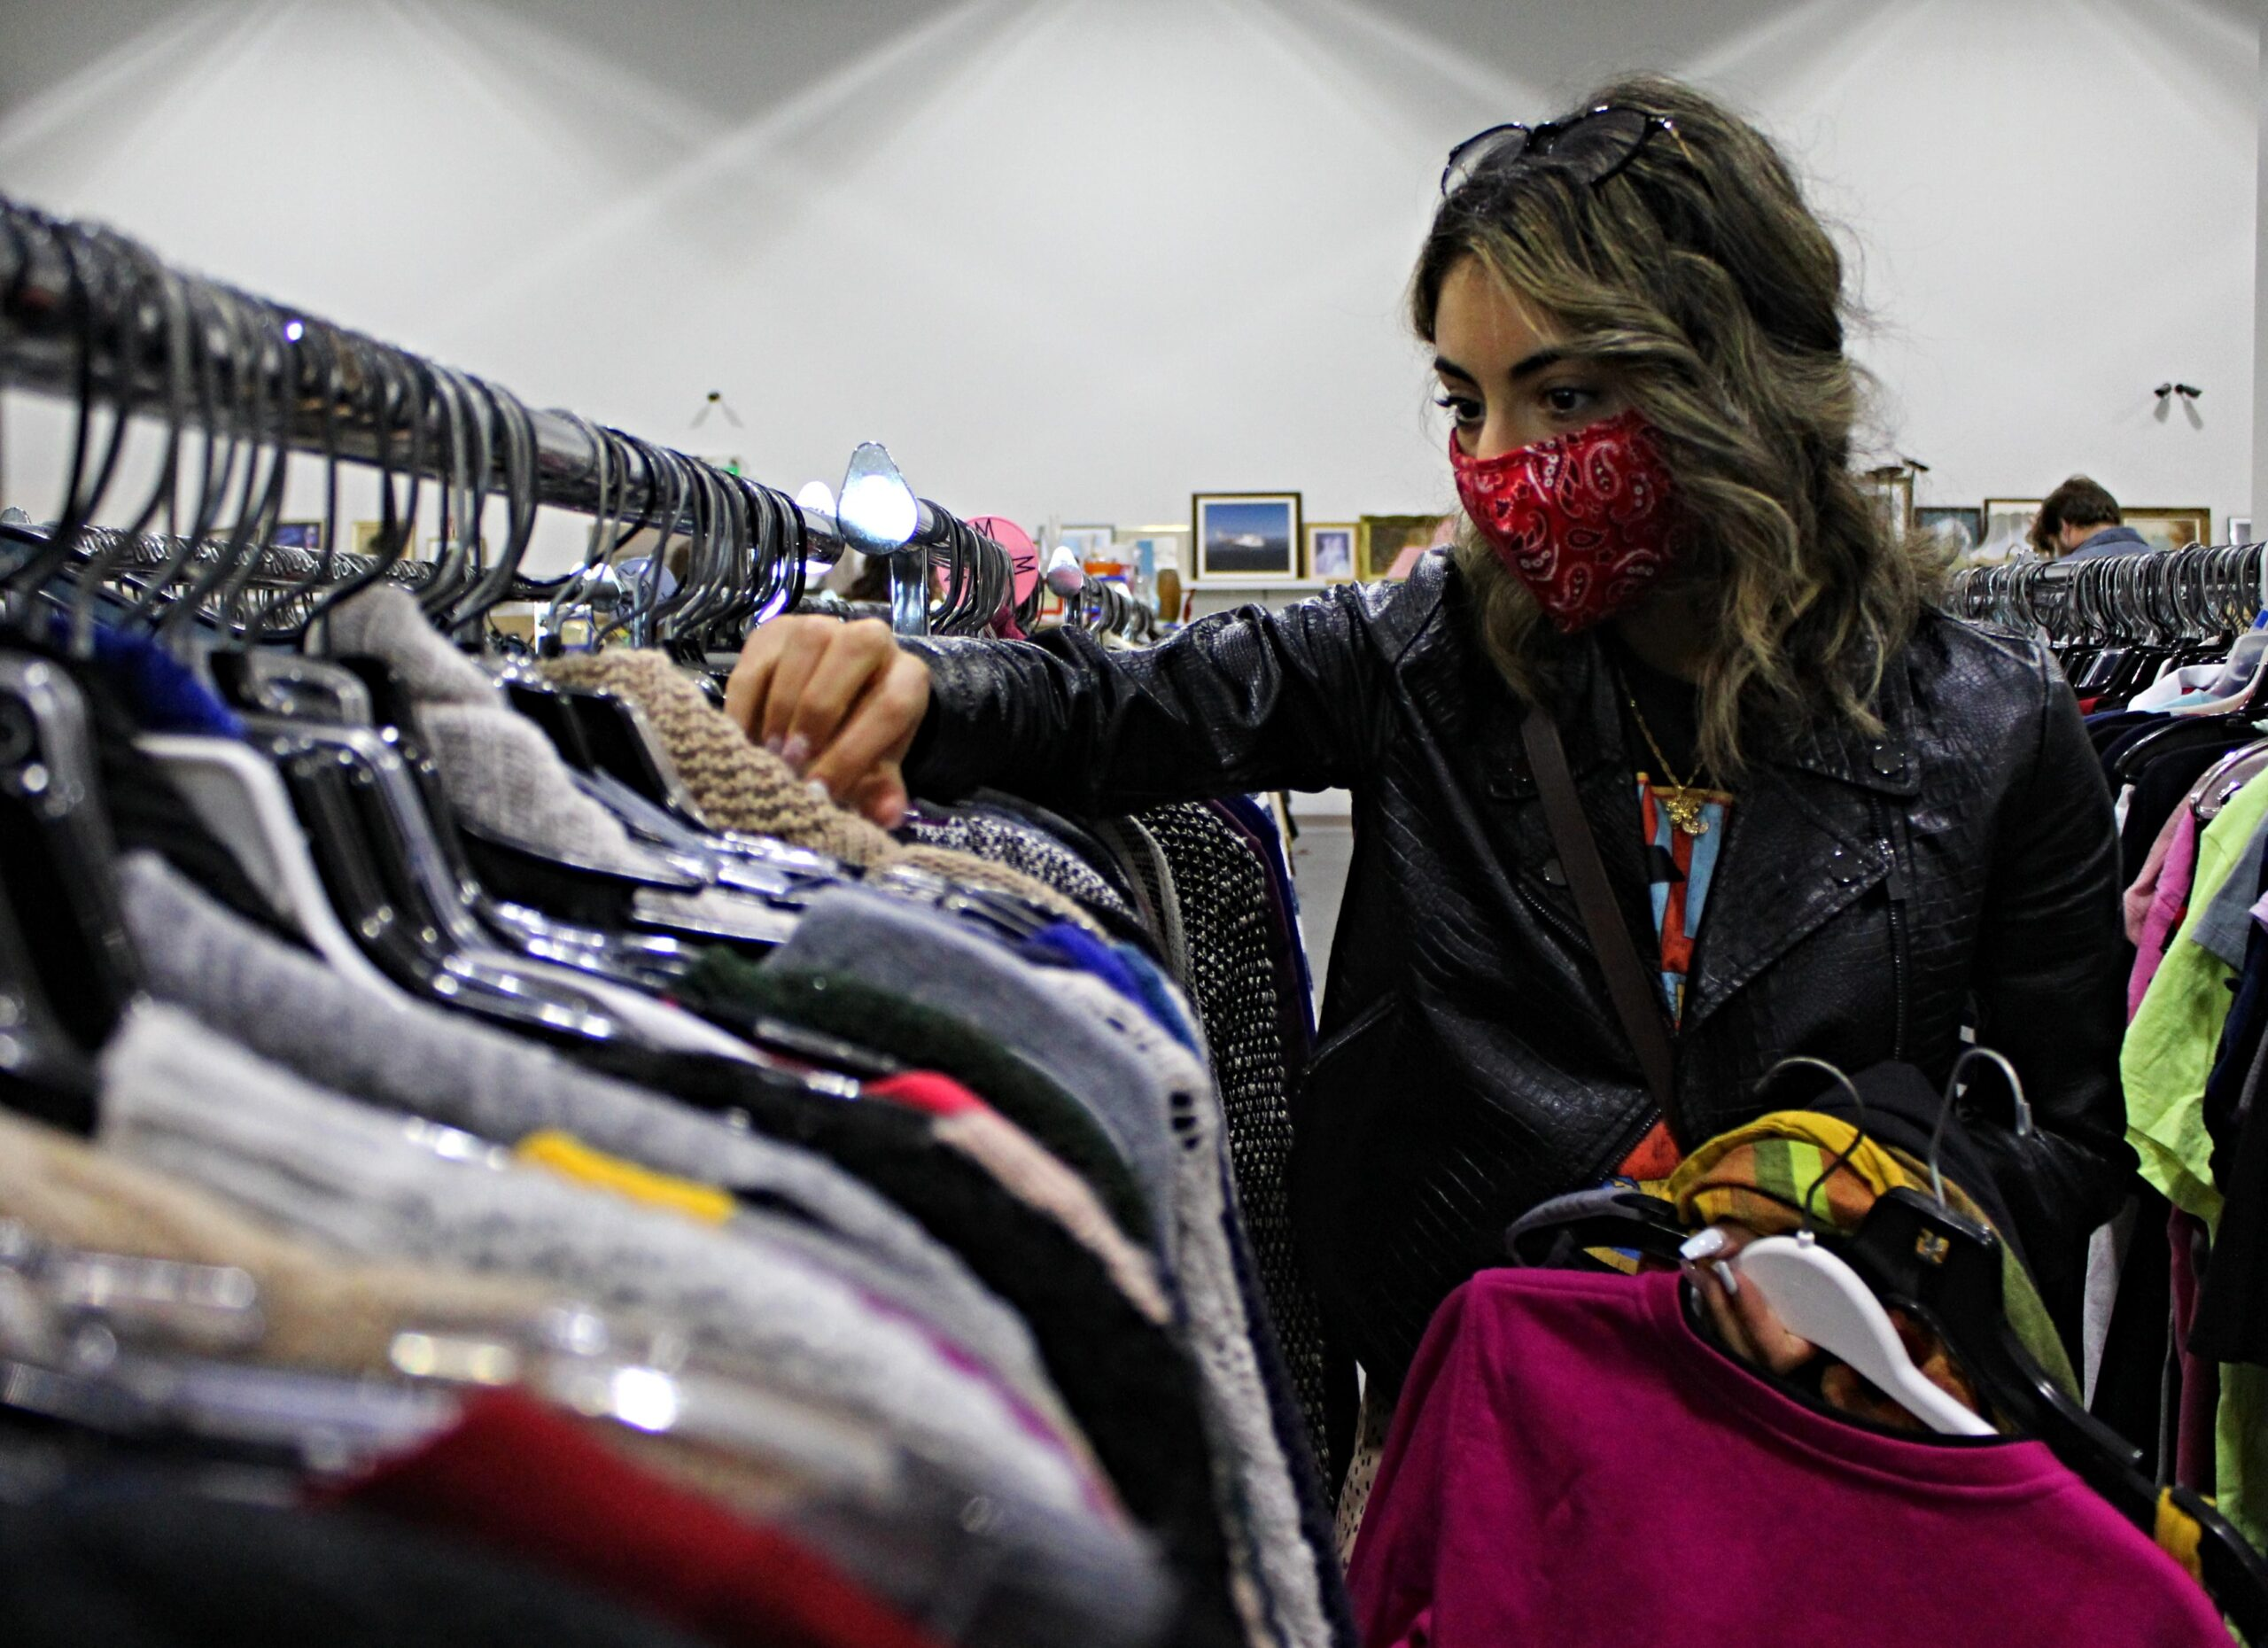 Marie Wasef started thrifting six years ago but has recently turned it into an online business. She spends hours a week picking apart local thrift stores hoping to find the right items to resell. Chantel Murrin/Kicker